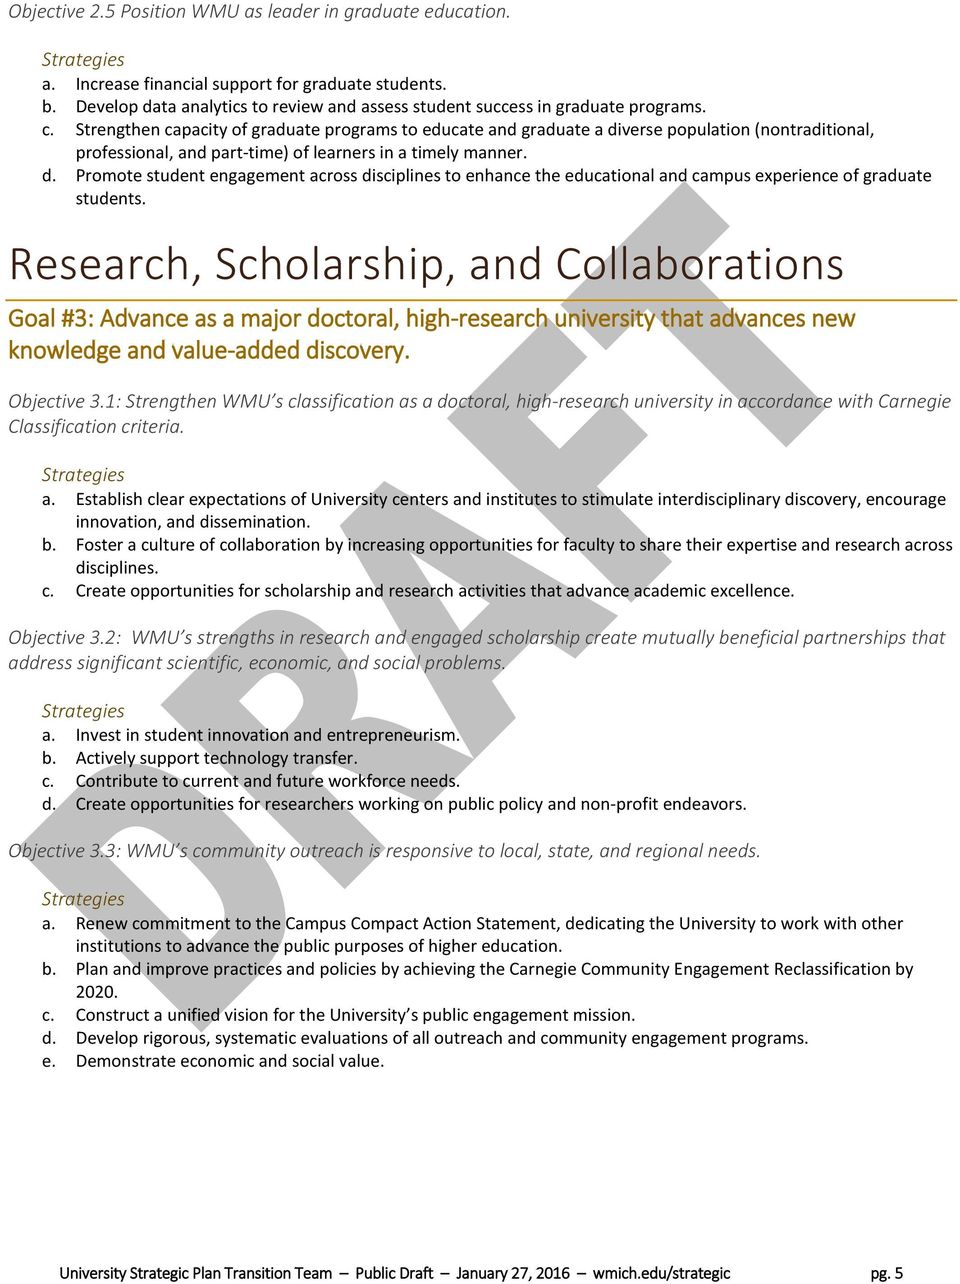 Research, Scholarship, and Collaborations Goal #3: Advance as a major doctoral, high-research university that advances new knowledge and value-added discovery. Objective 3.